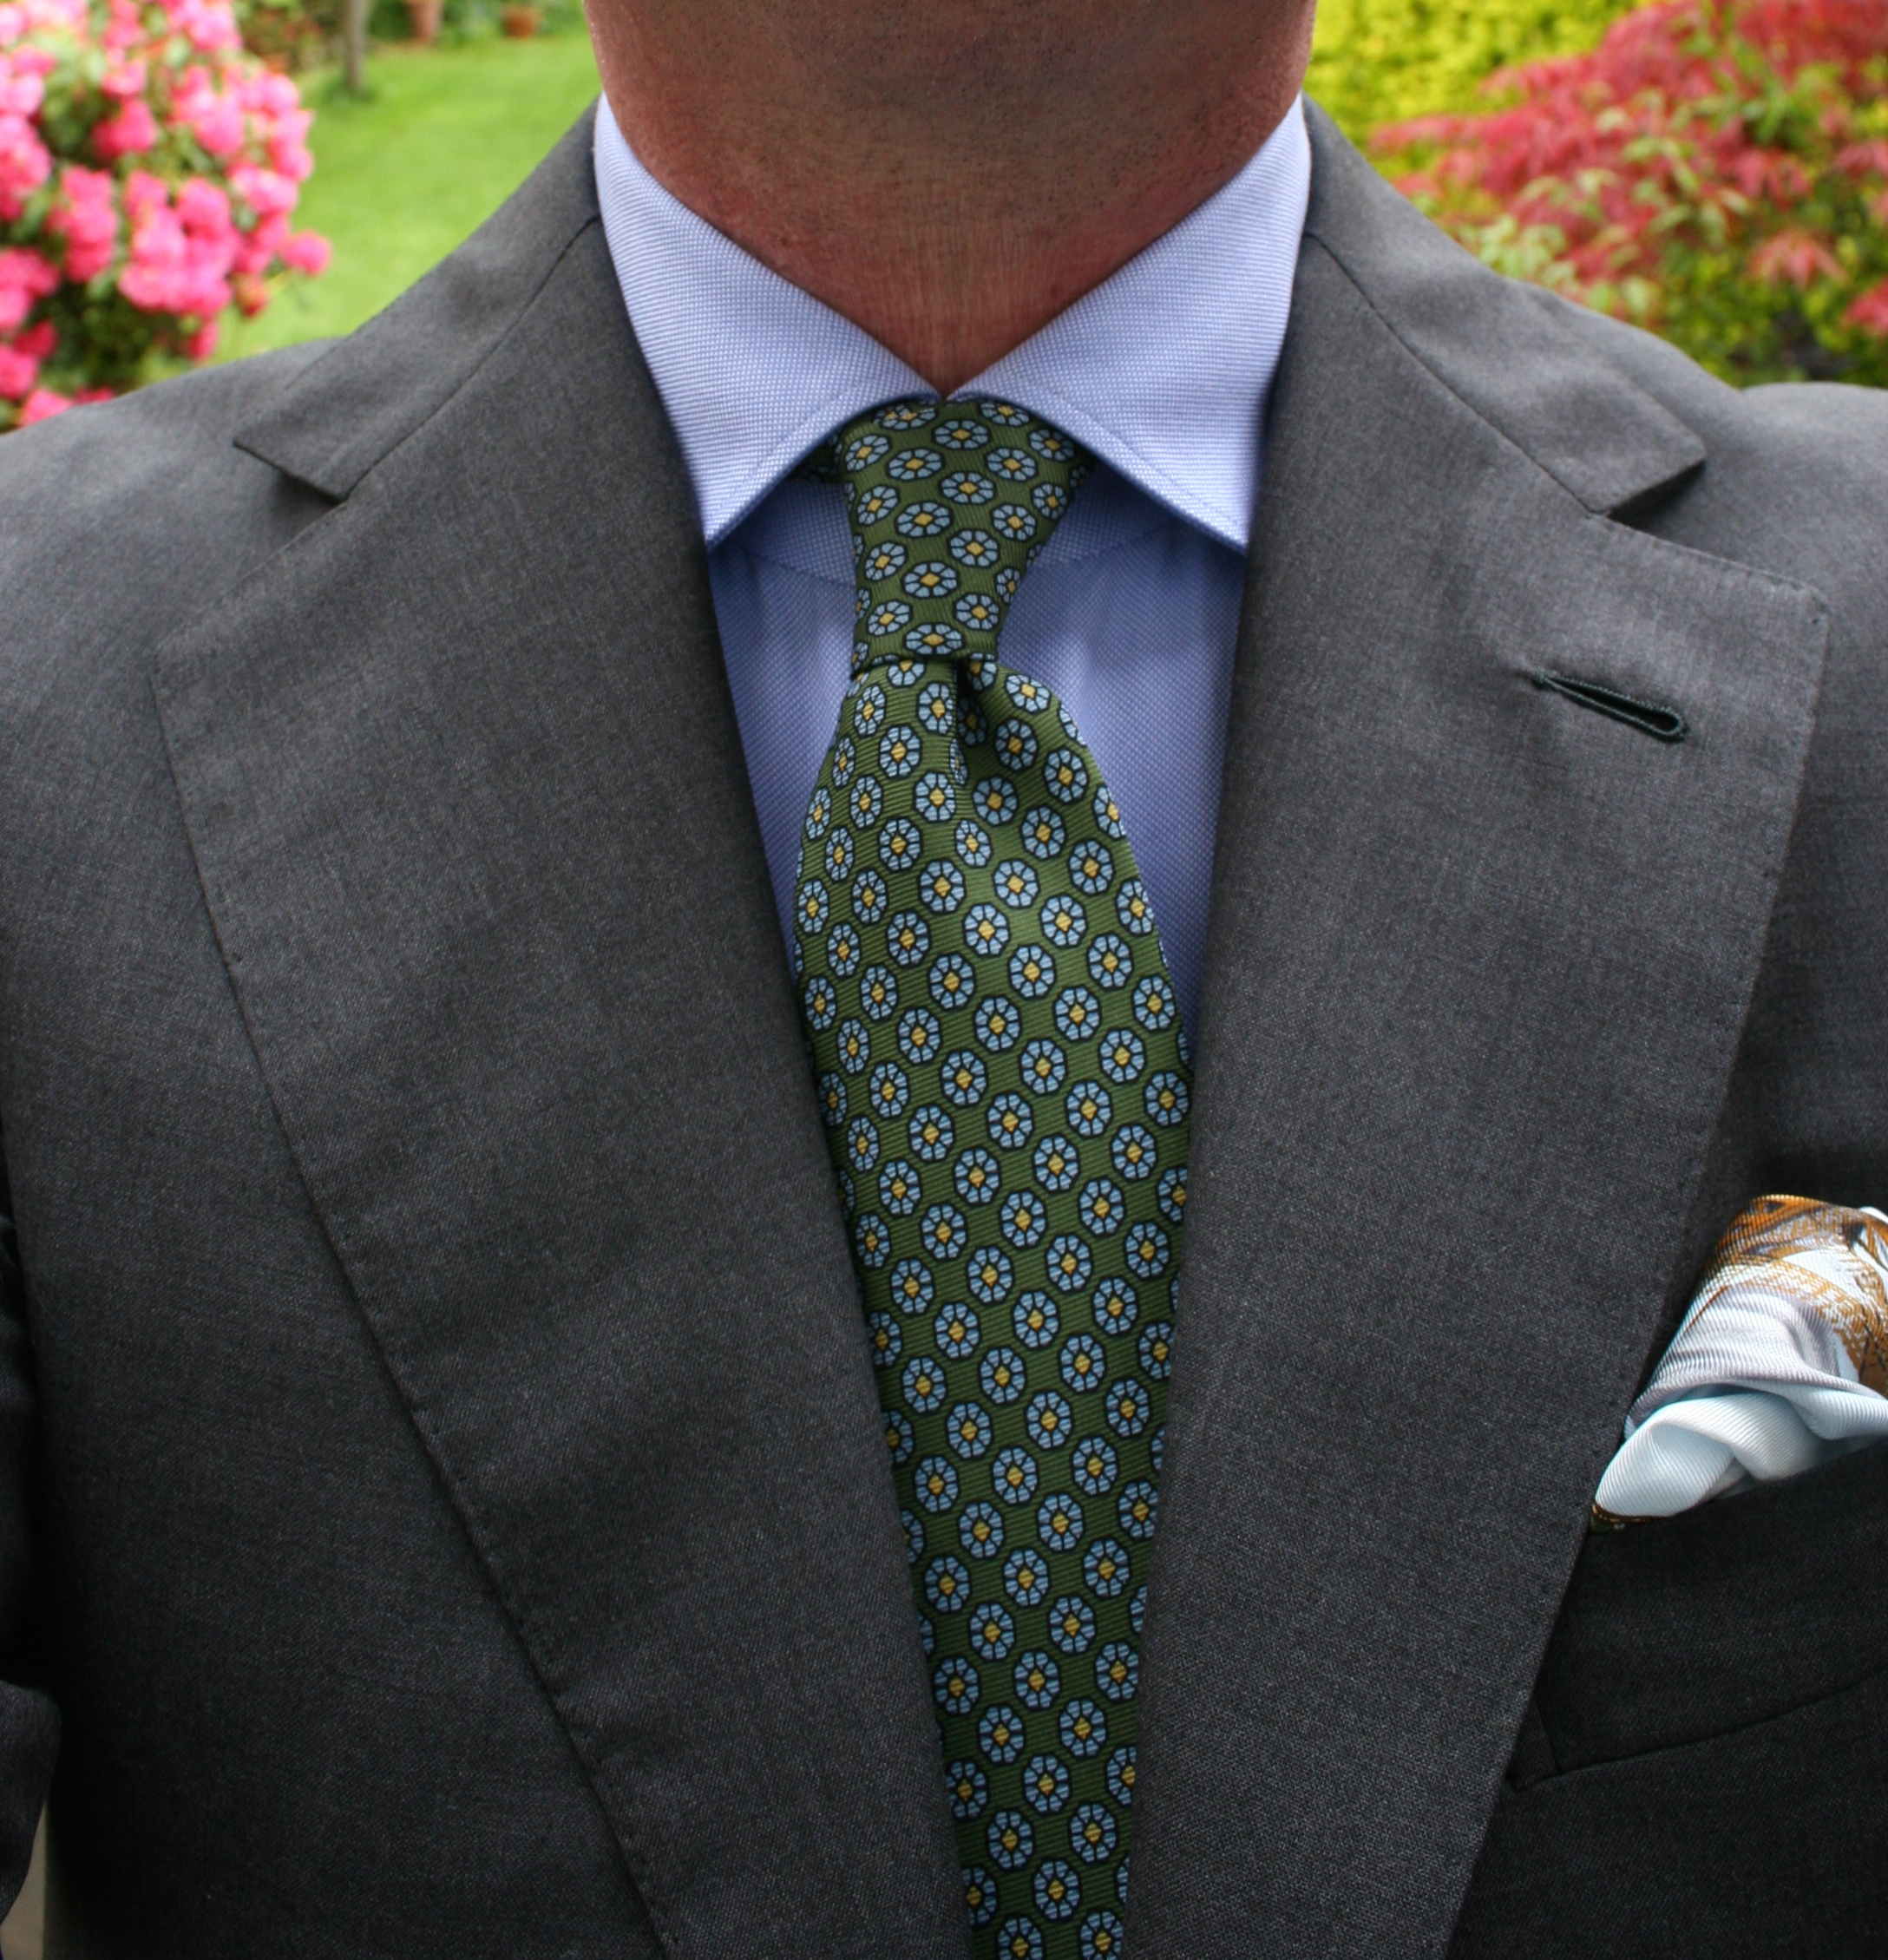 Cleav's photos in TEN TIES, FIVE JACKETS (10/5 THREAD): SPRING-SUMMER EDITION